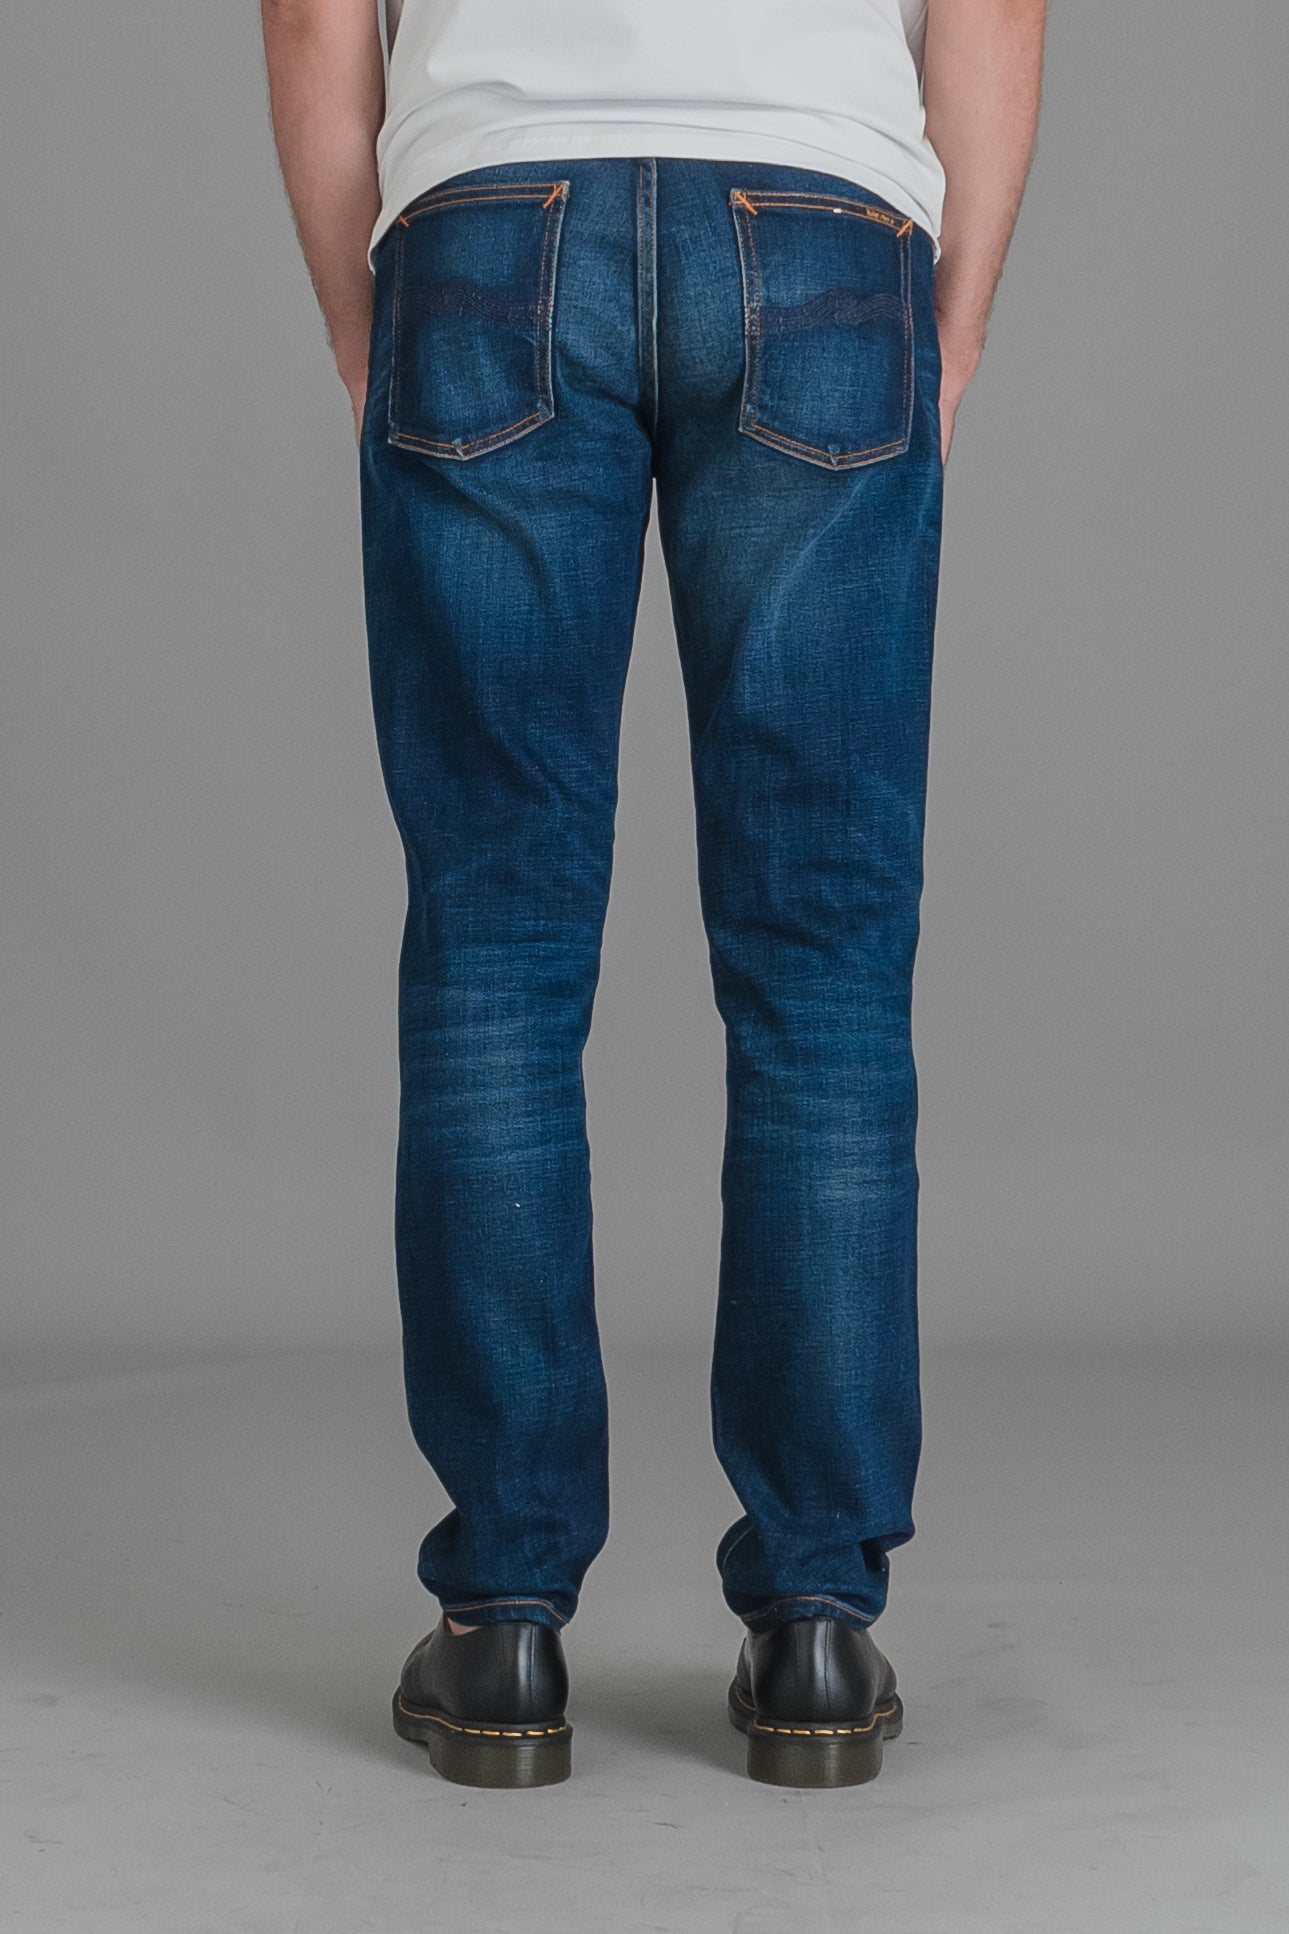 Nudie Lean Dean farkut - dark deep worn wash | INCH webshop